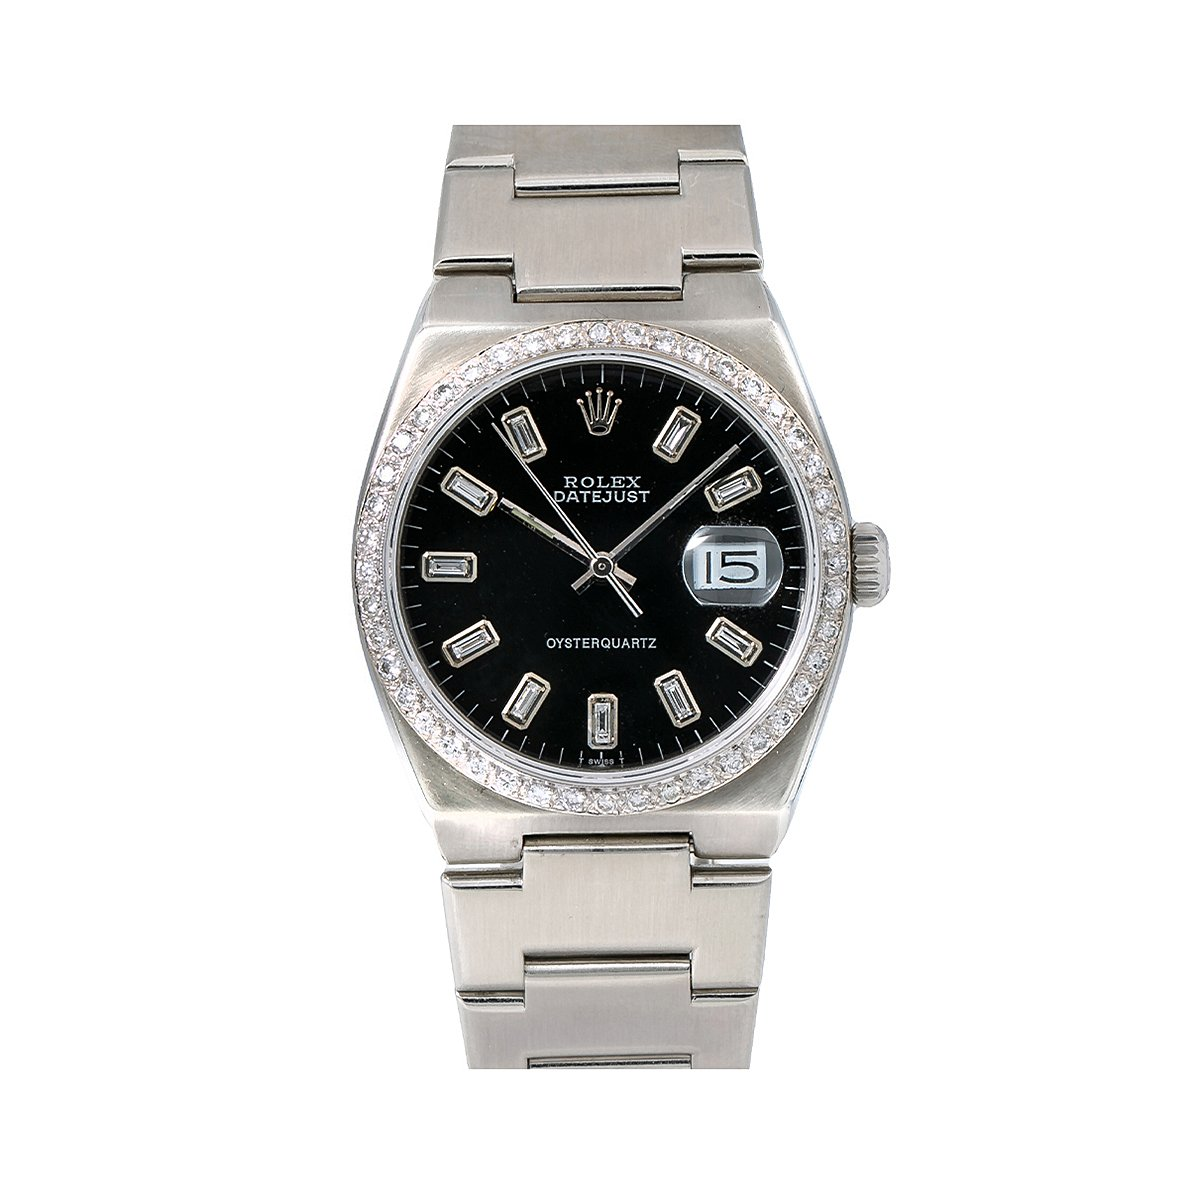 Rolex Datejust Mens Diamond Watch 17000 36mm Black Dial Oyster Bracelet 1.25Ct Main Image